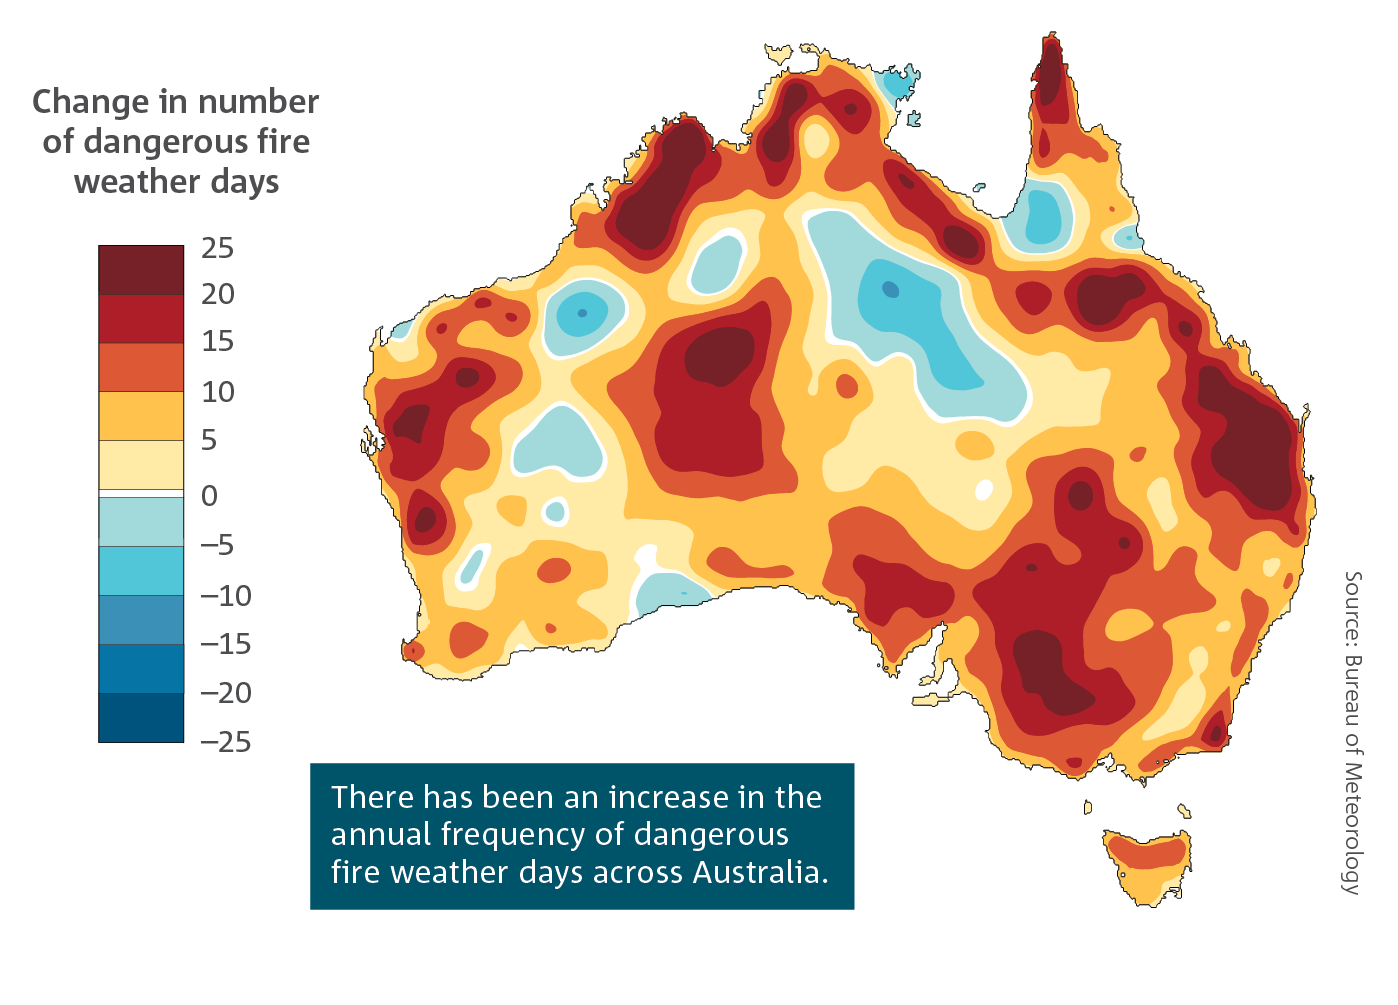 Map showing the change in number of dangerous fire weather days in Australia from -25 days to +25 days. Most of the country shows an increase in the number of days, with large areas in the 10 to 25 day range.